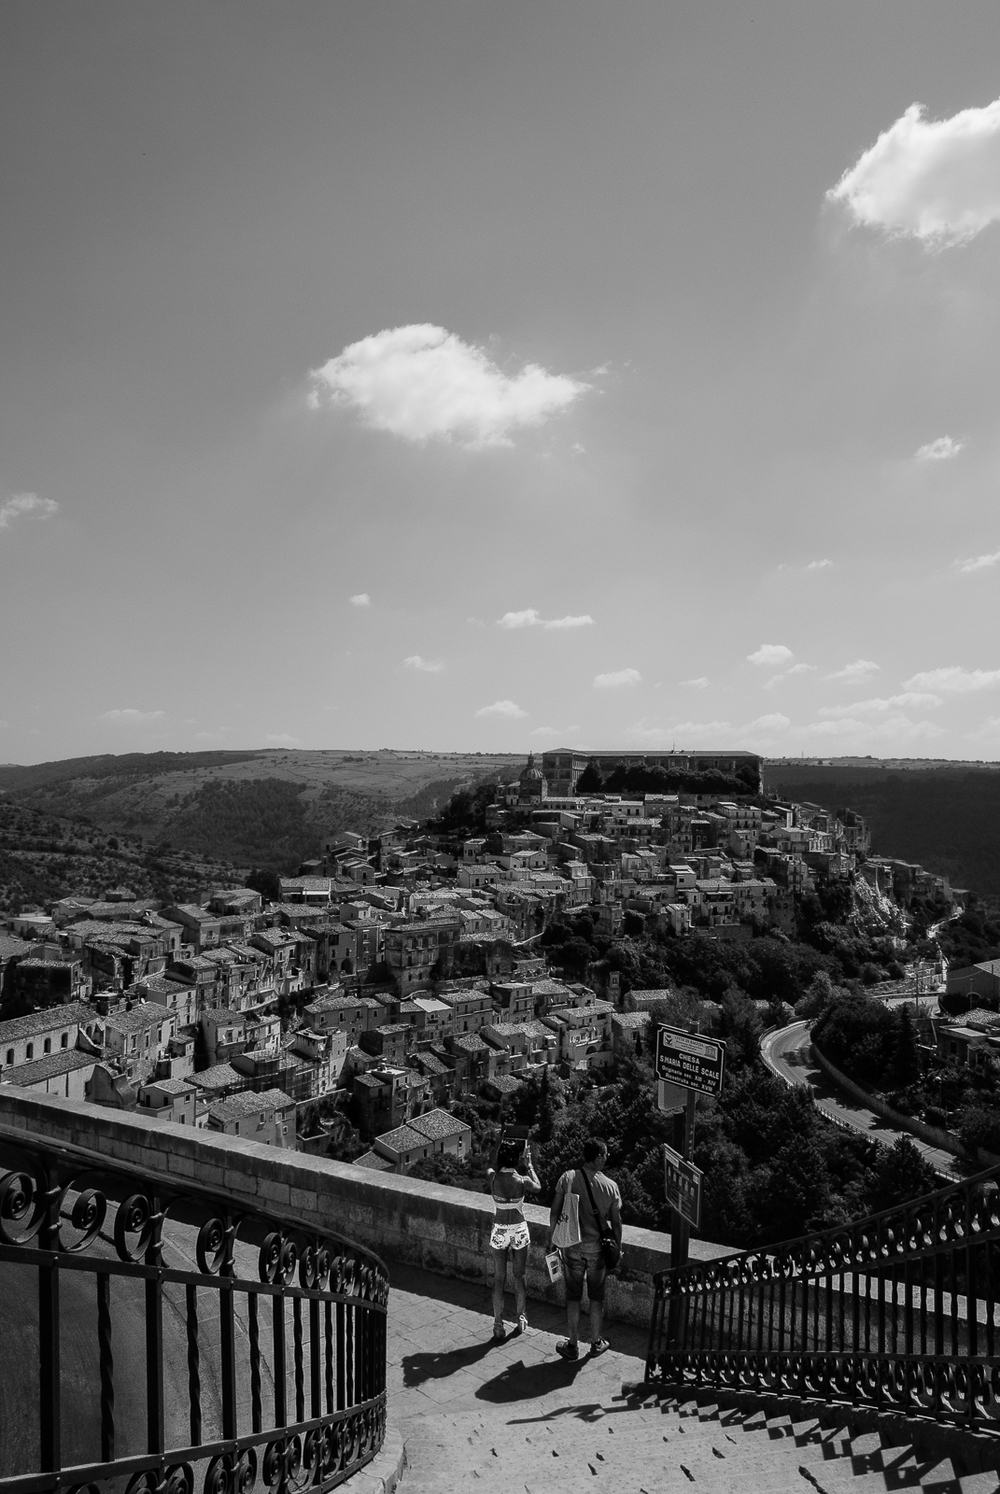 Ragusa Ibla viewed from Ragusa